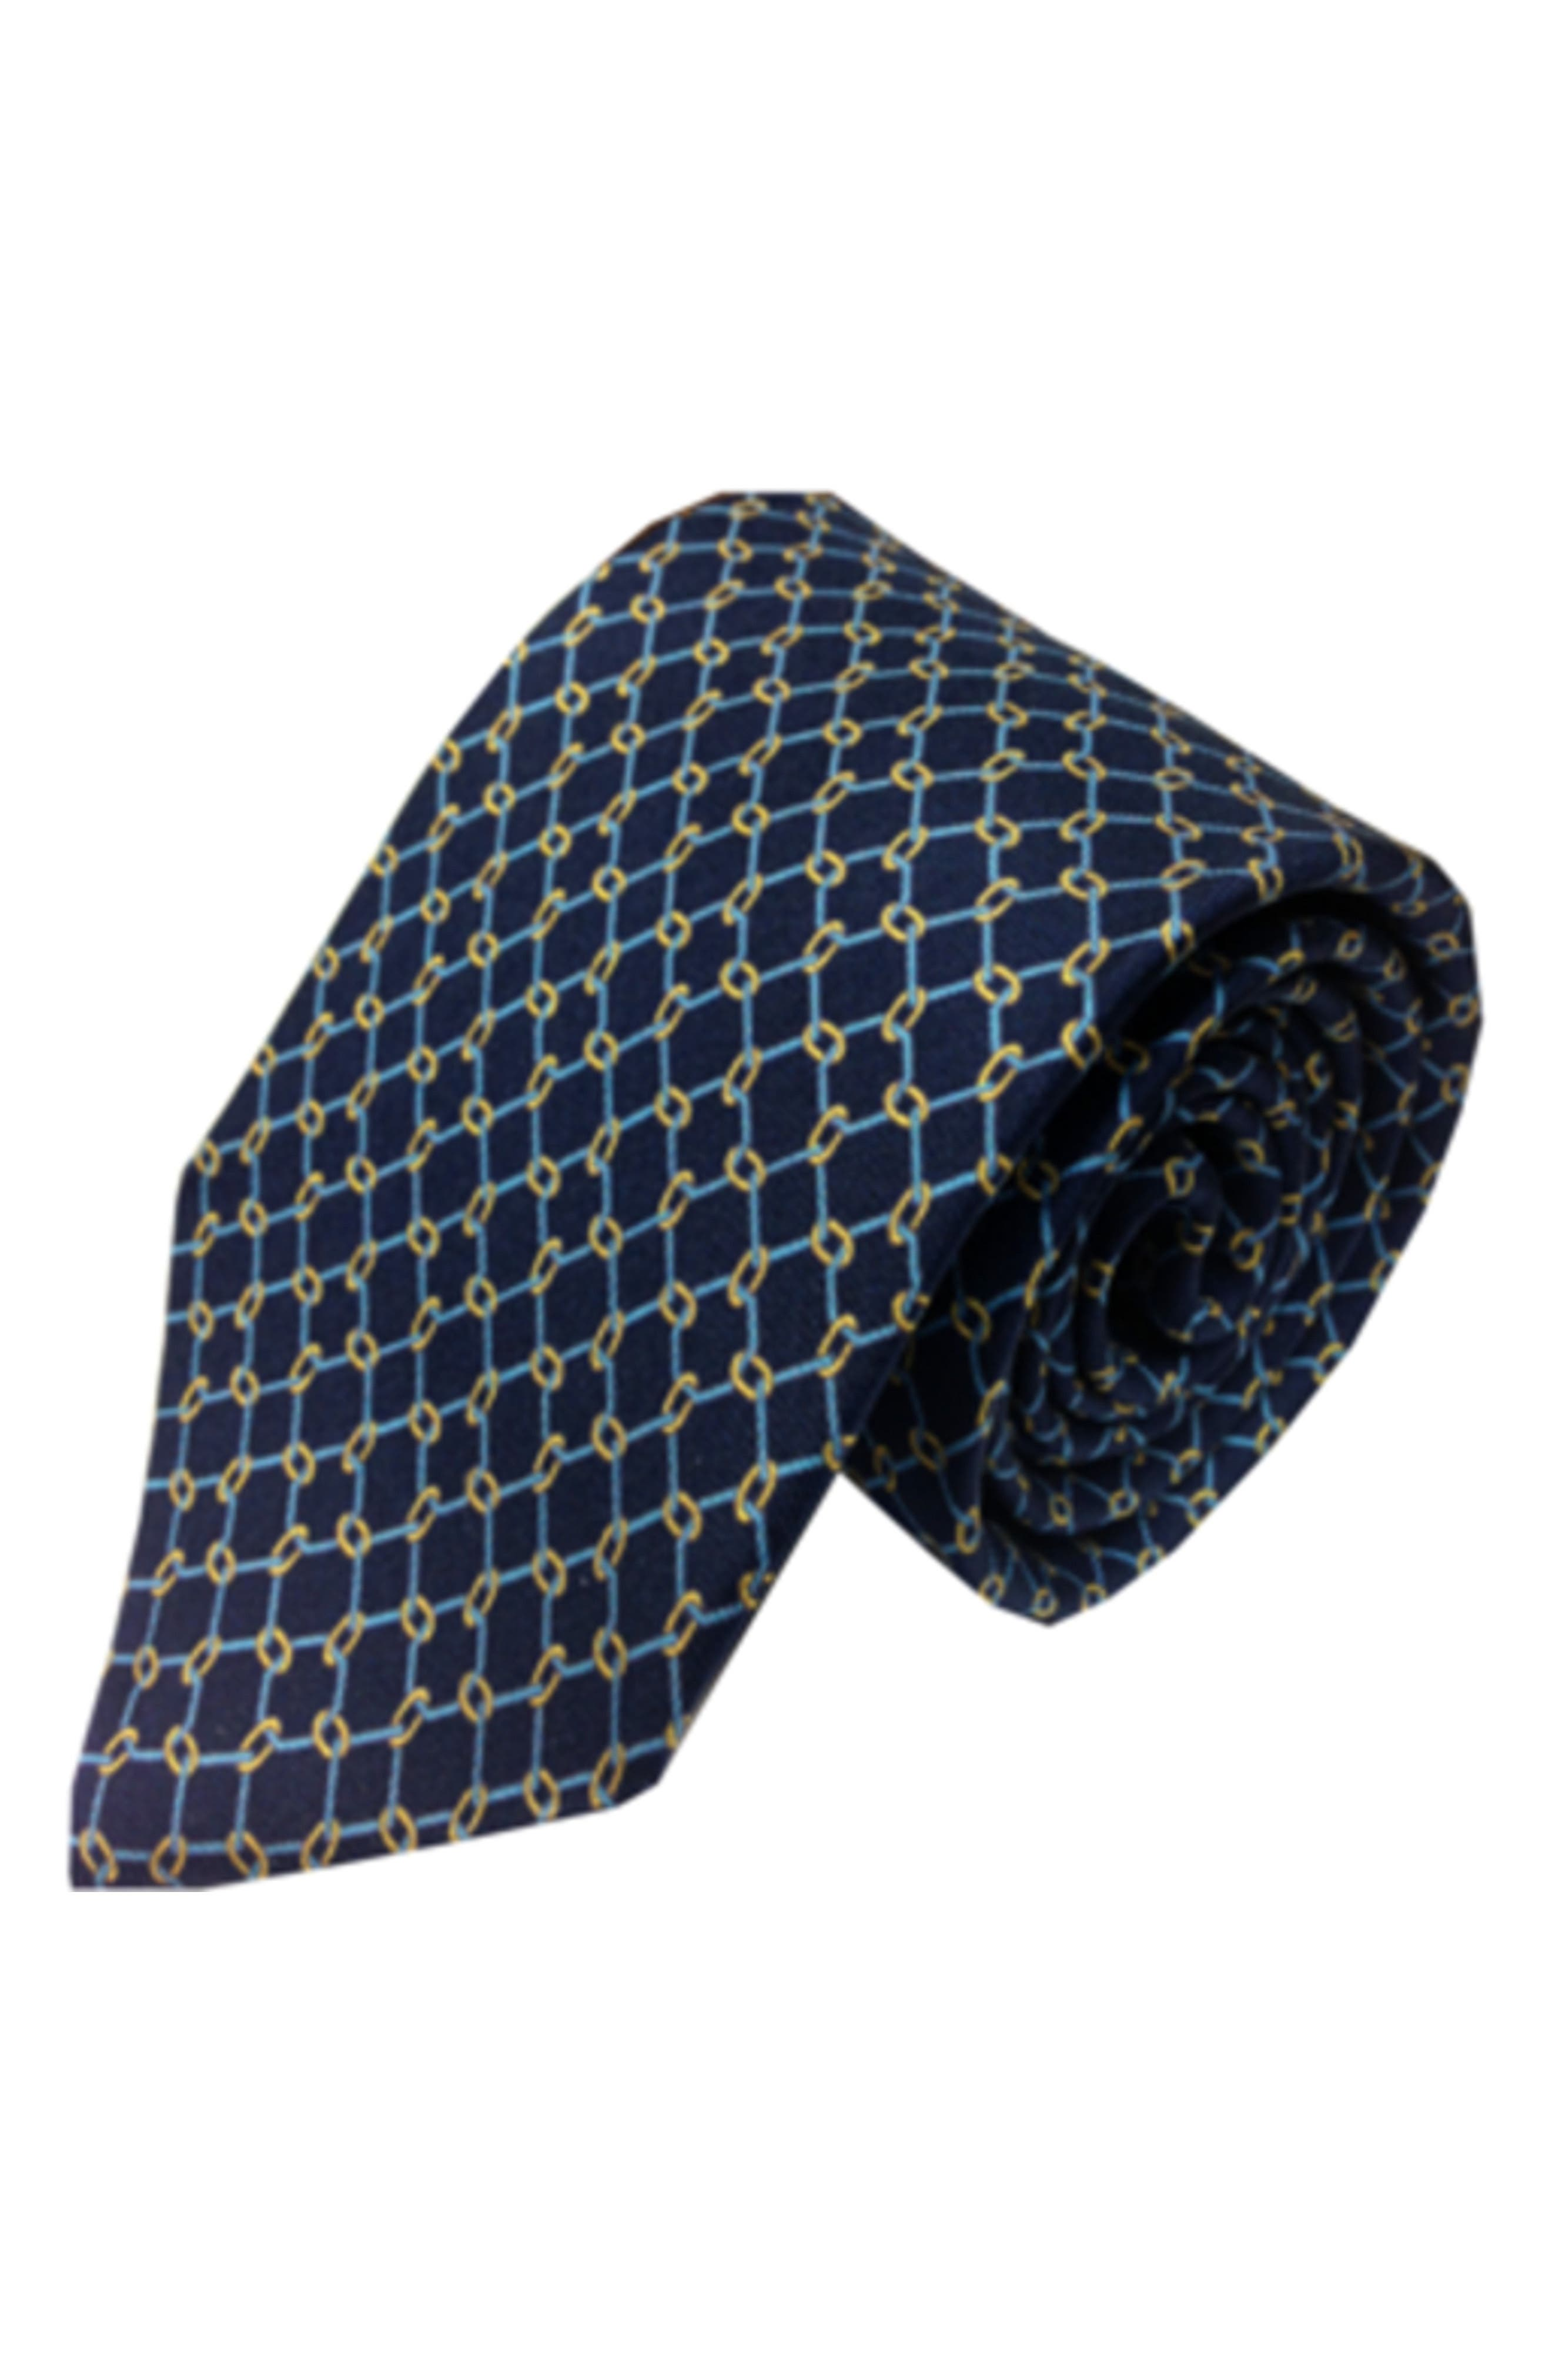 Ball & Chain Silk Tie,                             Main thumbnail 1, color,                             410